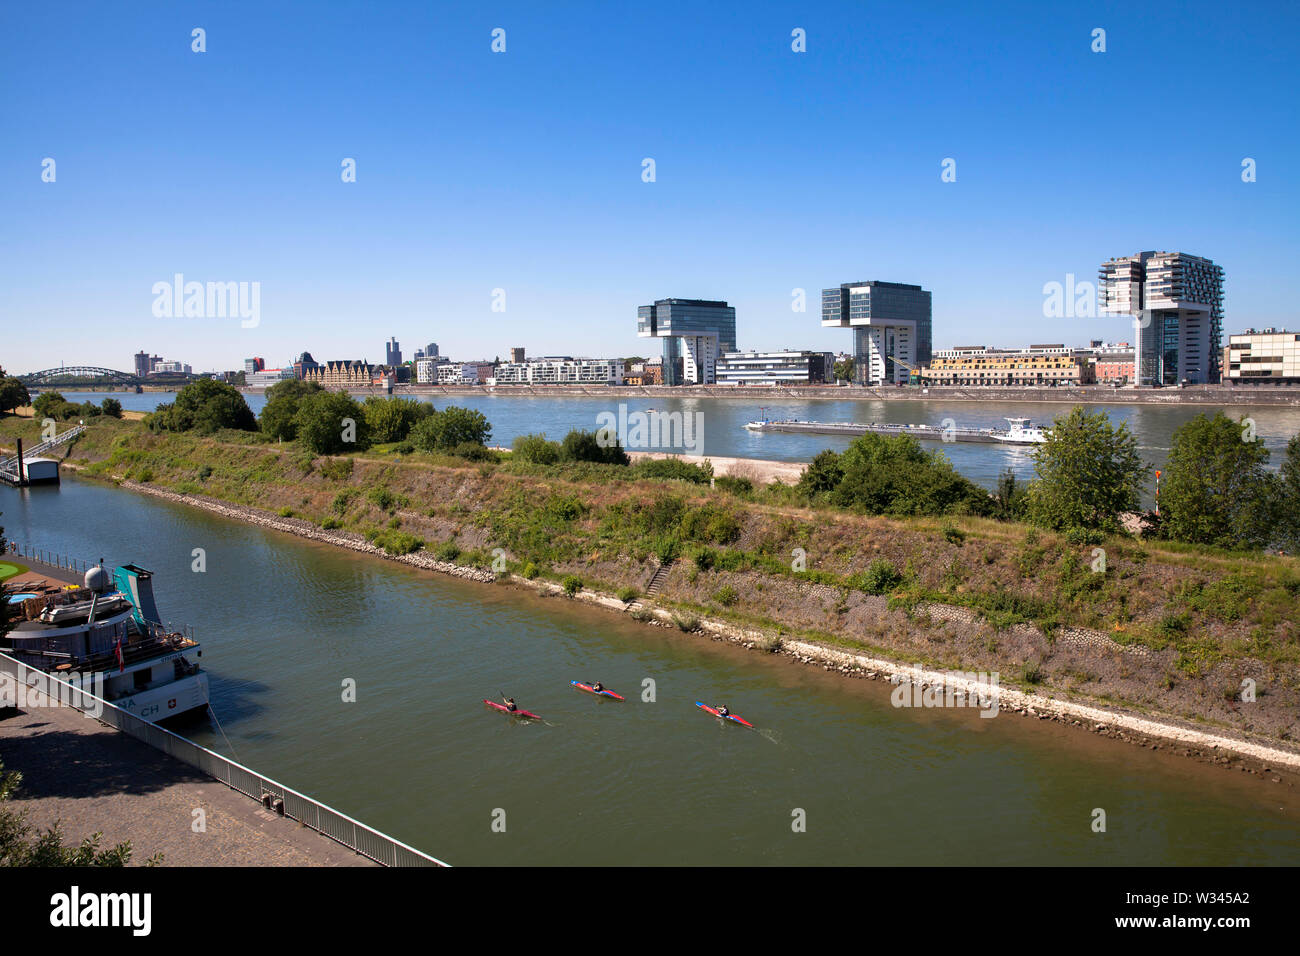 the Rhine harbor in the district Deutz, in the background the river Rhine and the Crane Houses at the Rheinau harbor, Cologne, Germany.  der Deutzer H - Stock Image